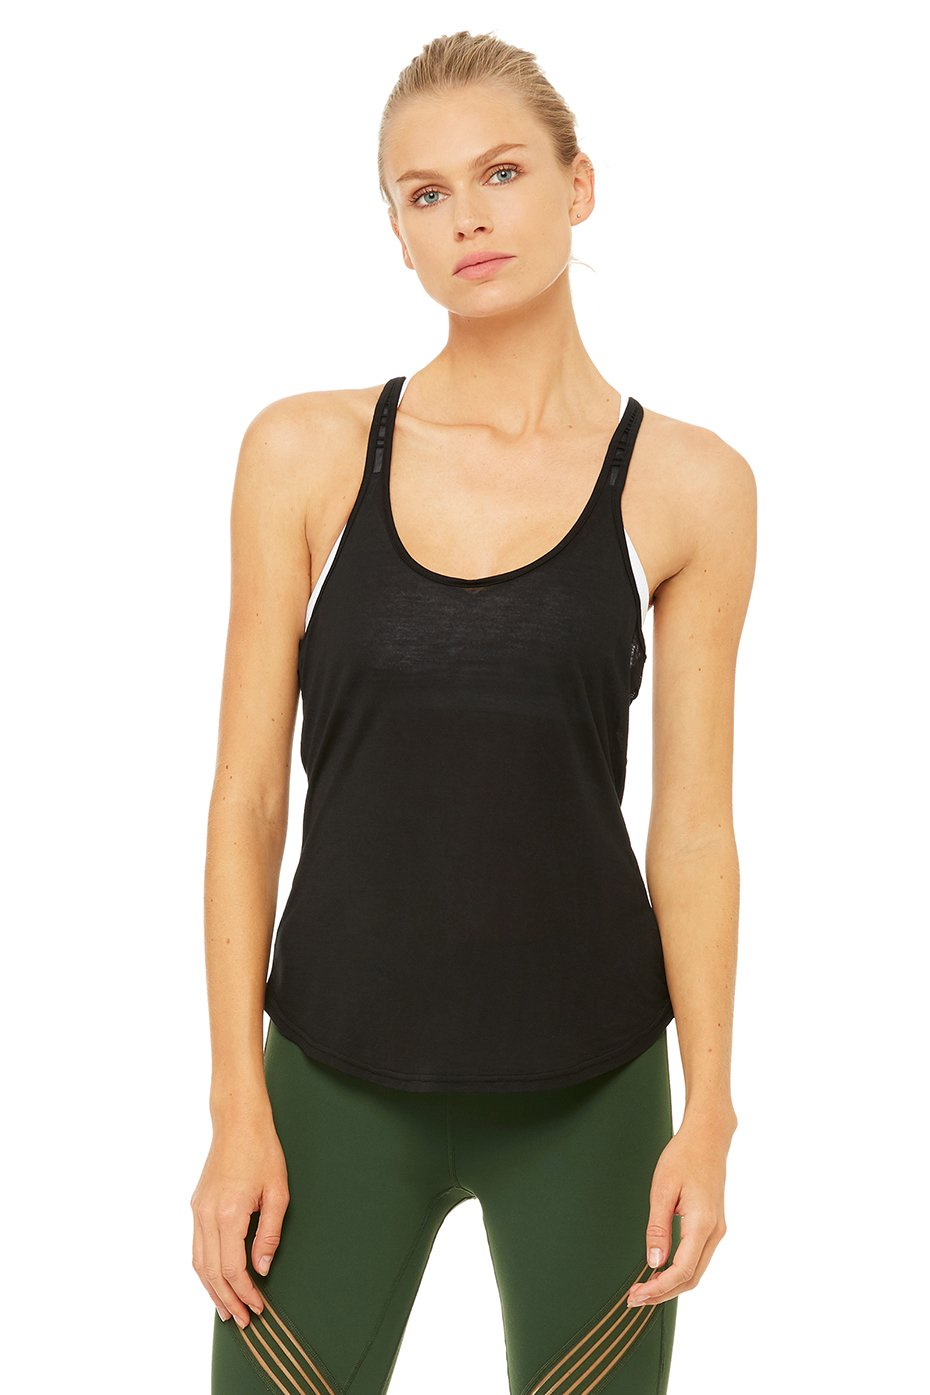 Alo Yoga Mood Tank - Black